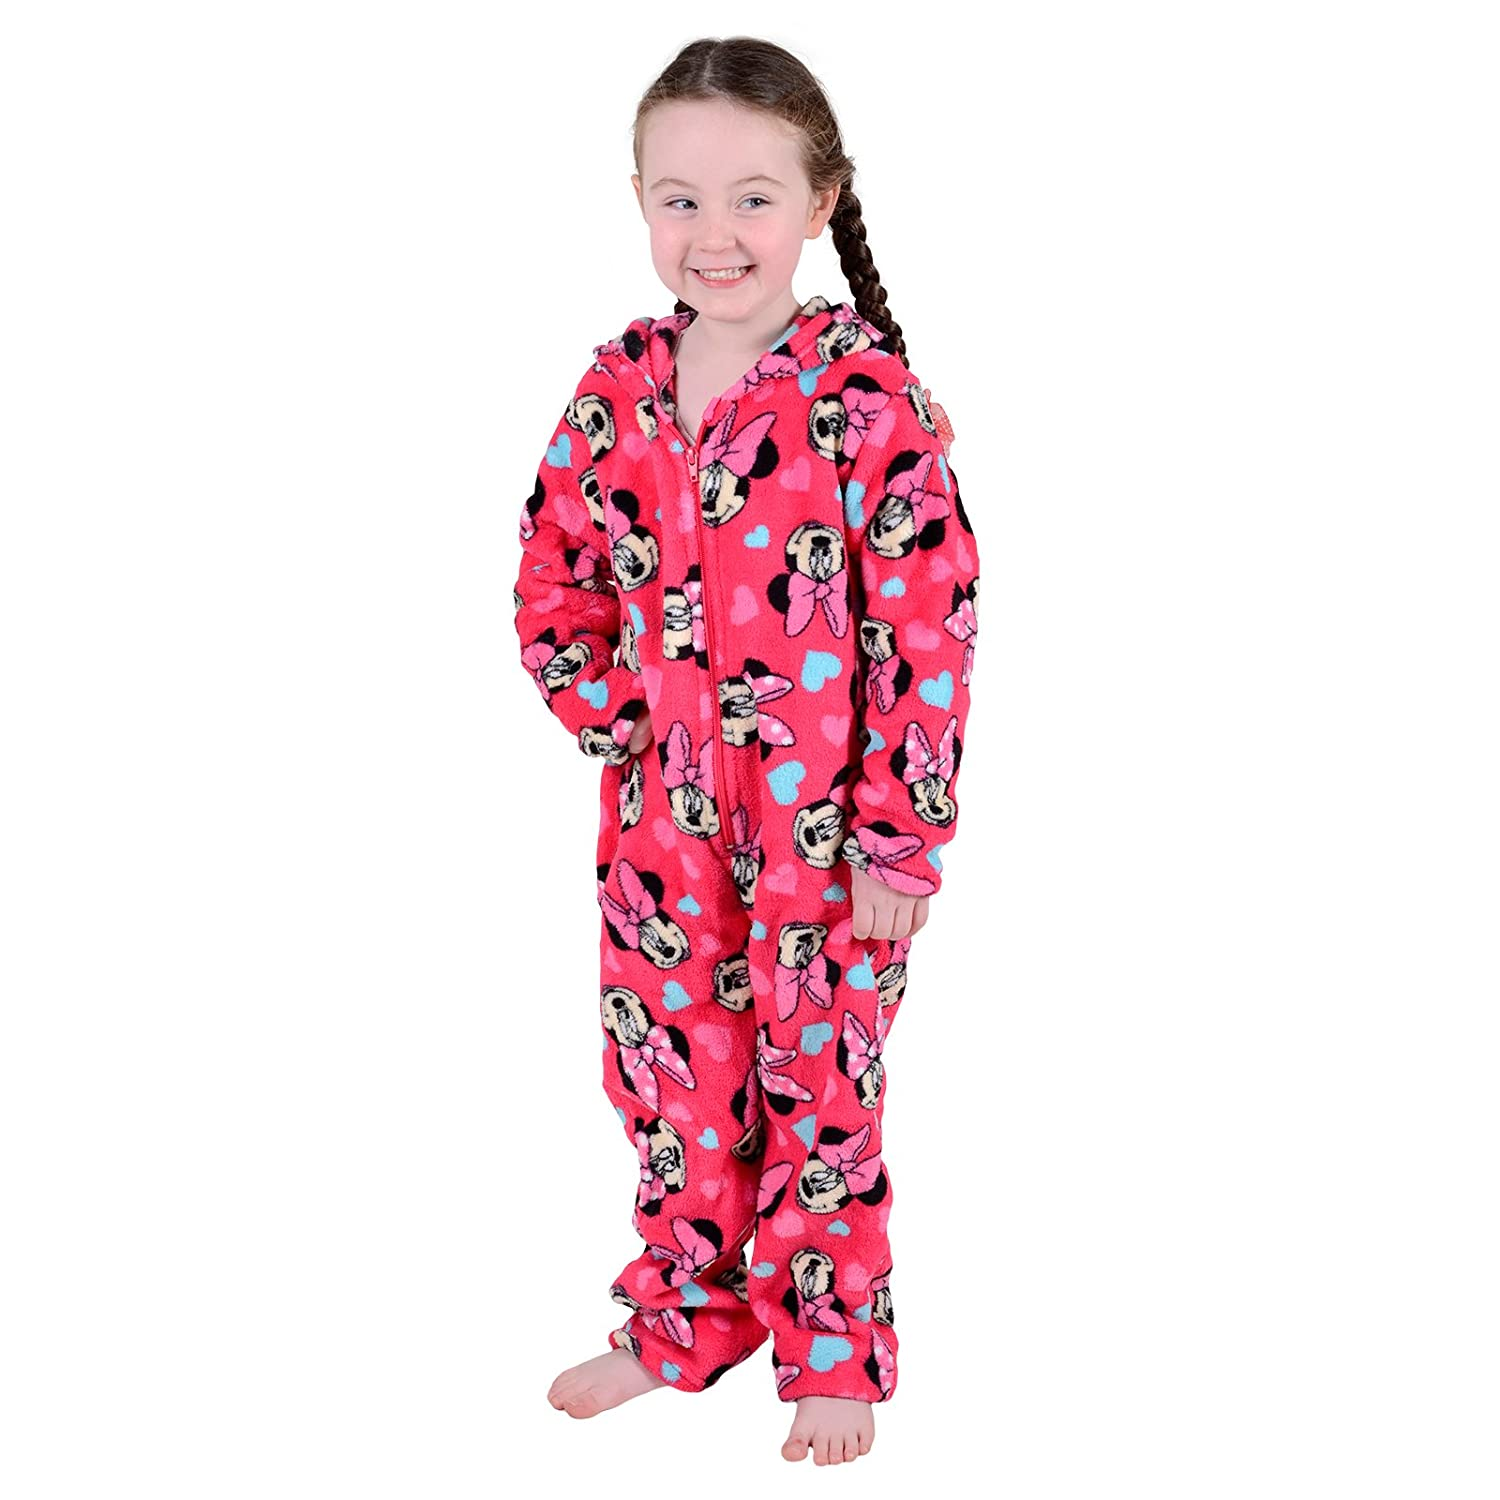 9b21bed44 Disney Minnie Mouse Girls Onesie Pyjamas Soft All In One Jump Play ...